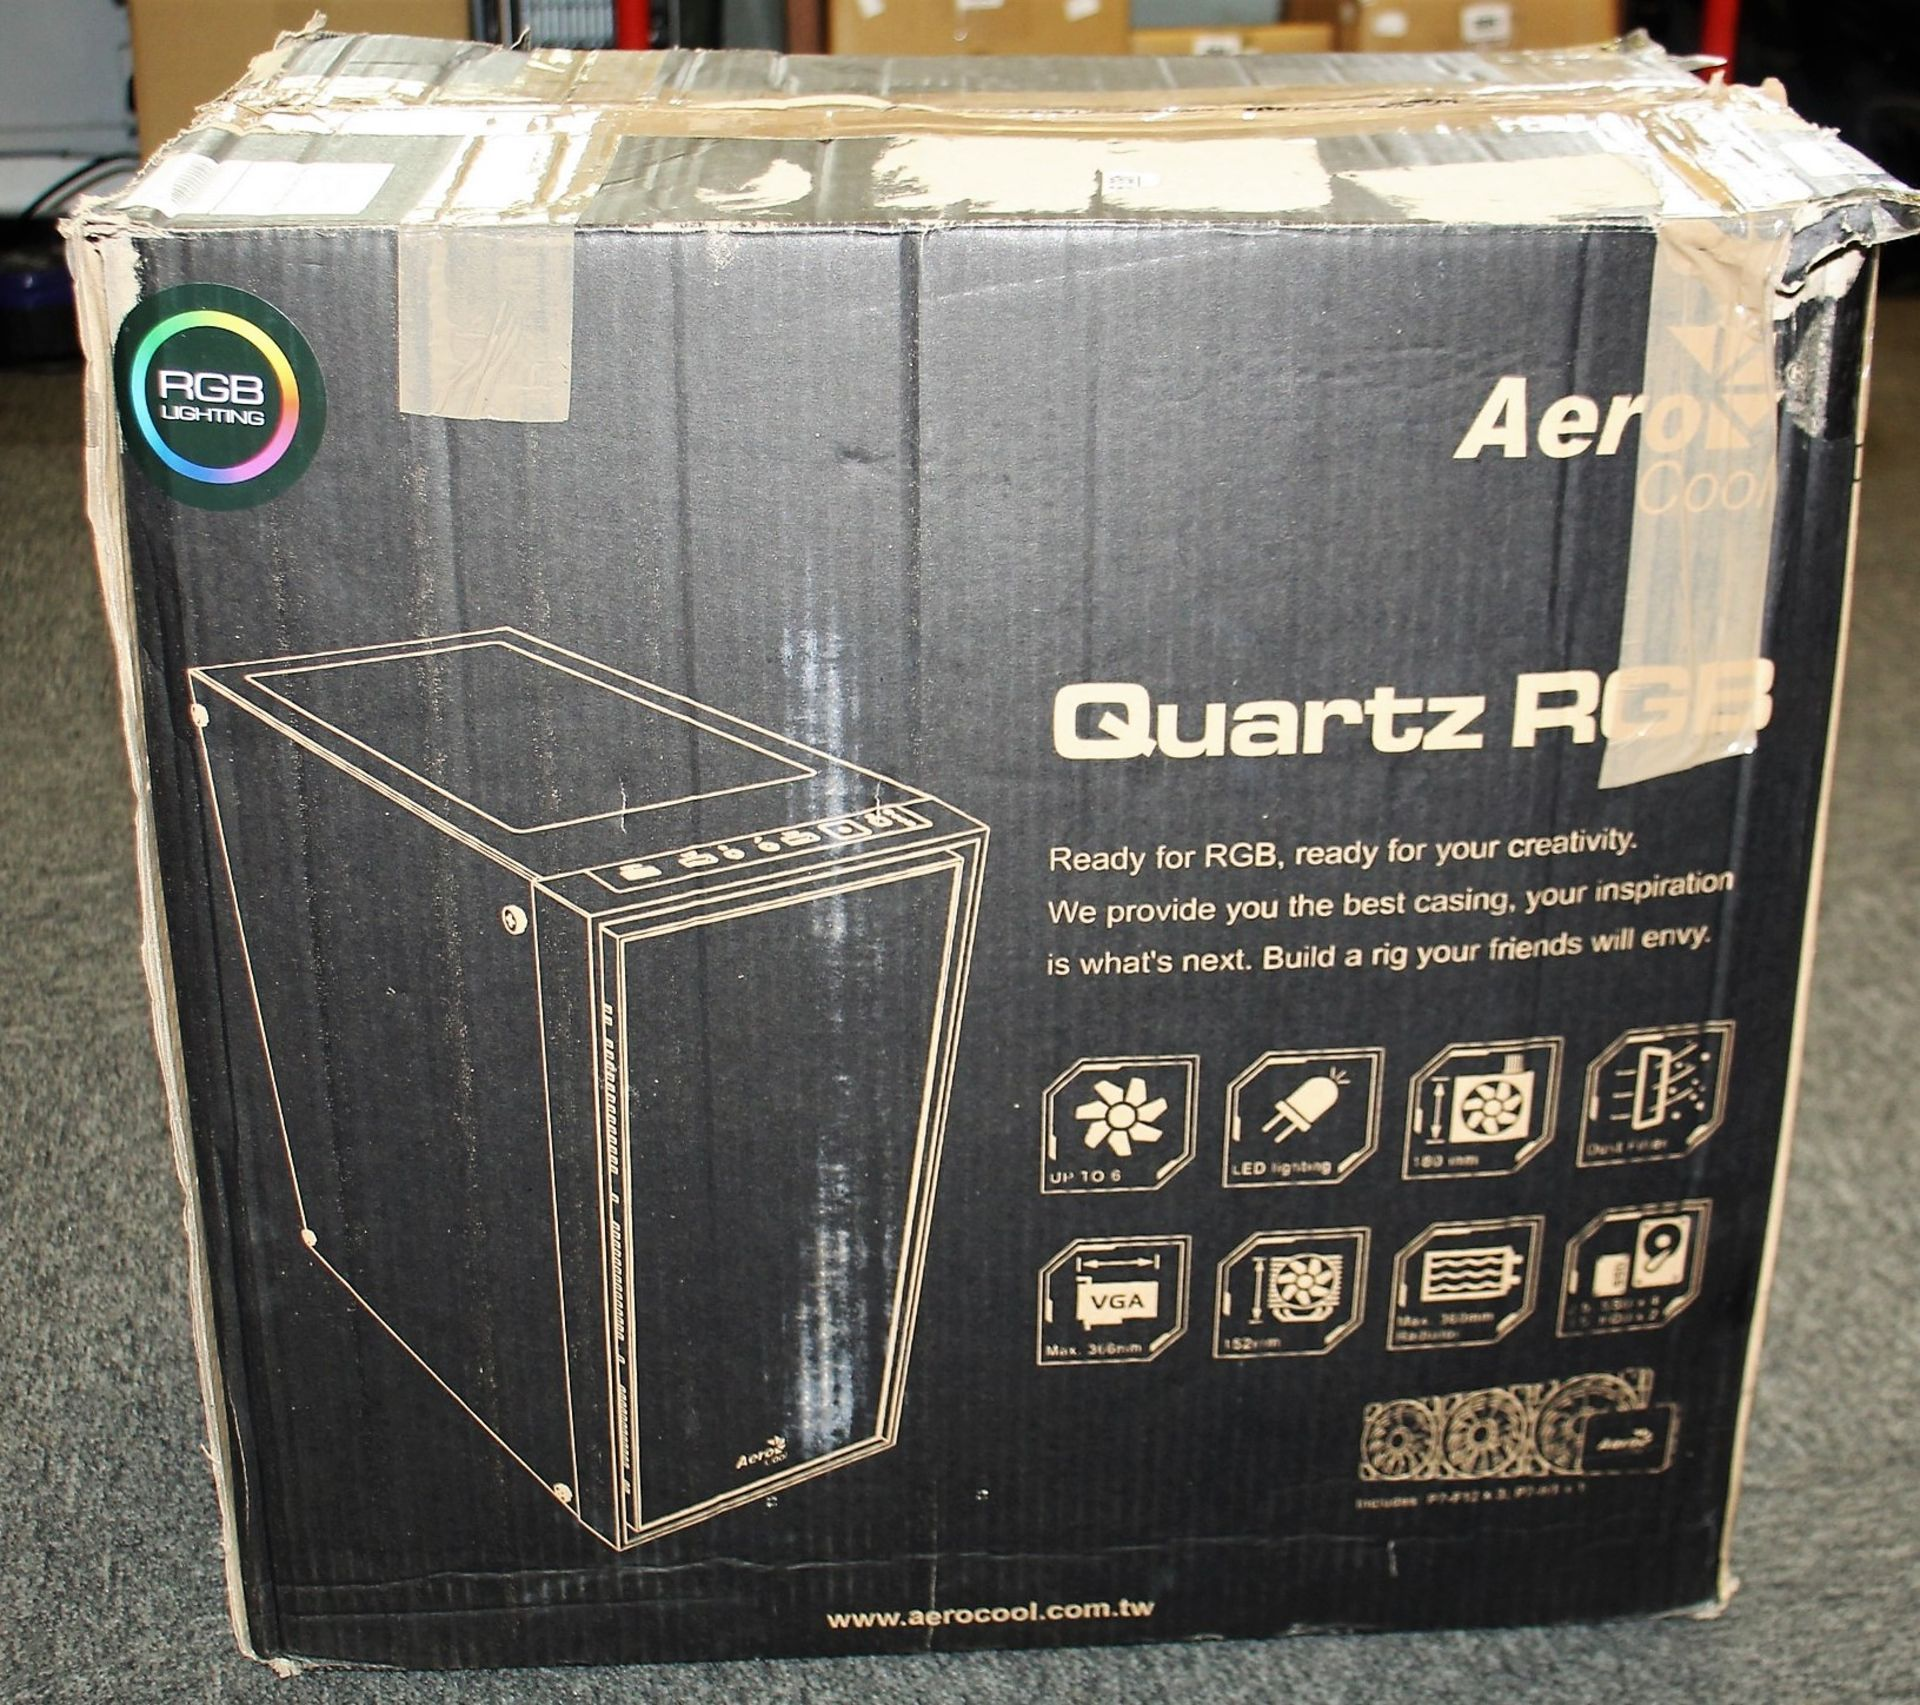 A pre-owned Cube Falcon RGB Custom Gaming PC in an AreoCool Quartz RGB Housing with Intel Core i5- - Image 2 of 15